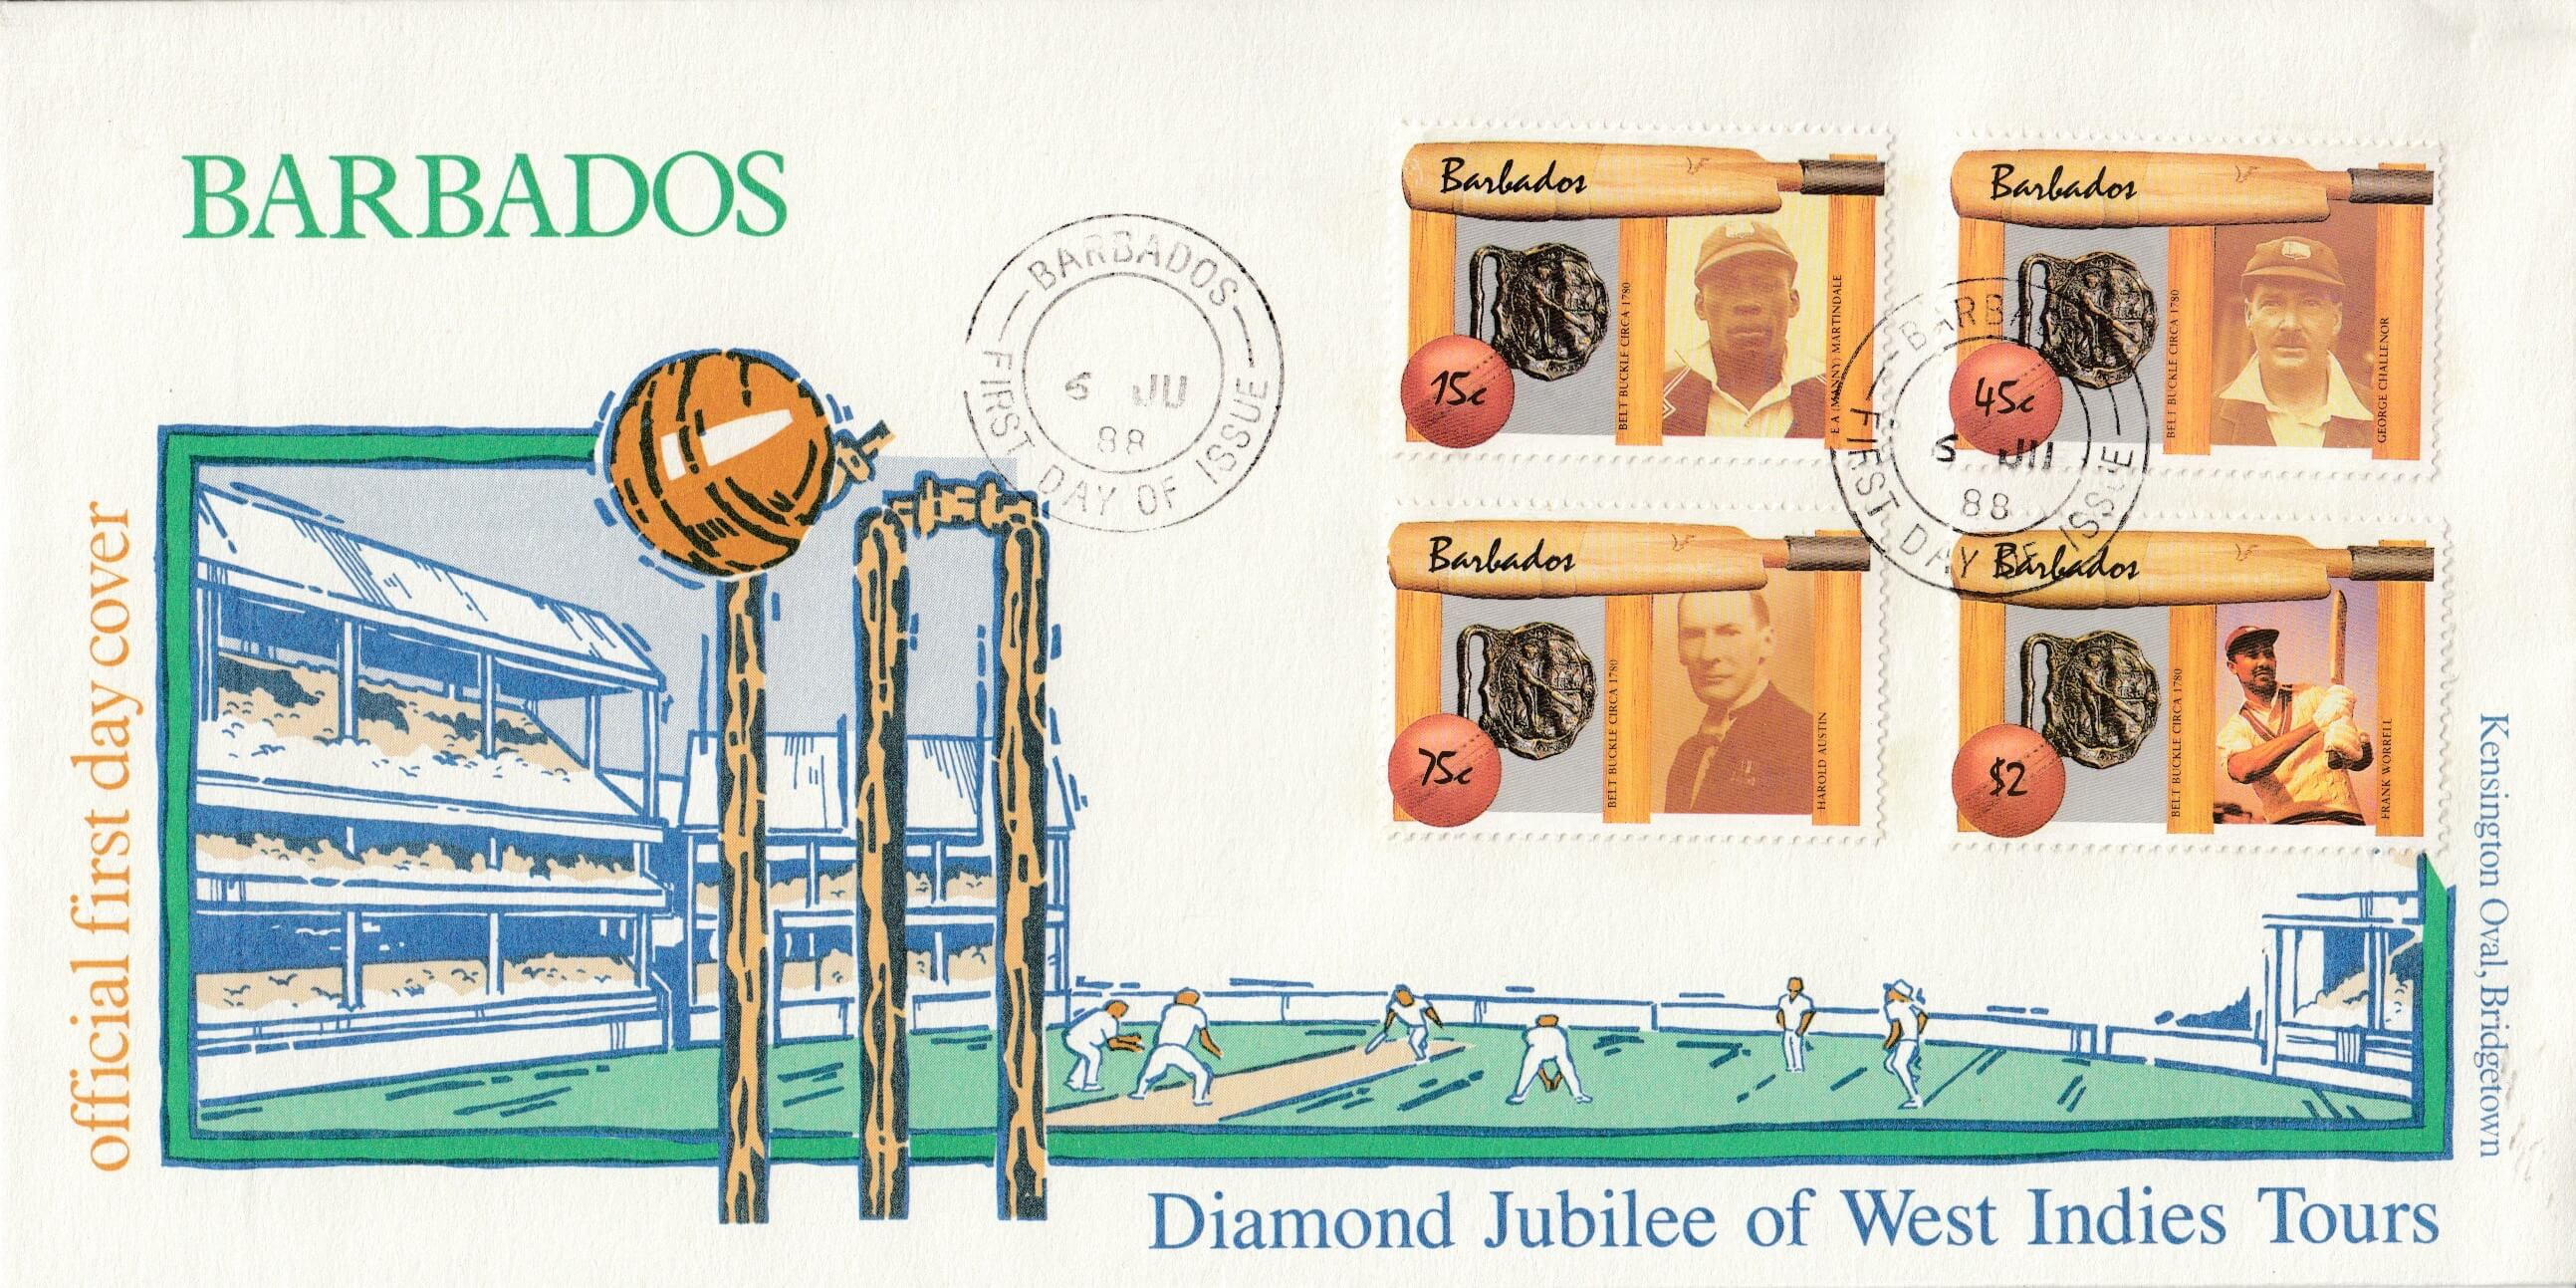 Barbados cricketers FDC highlights a famous philatelic mistake